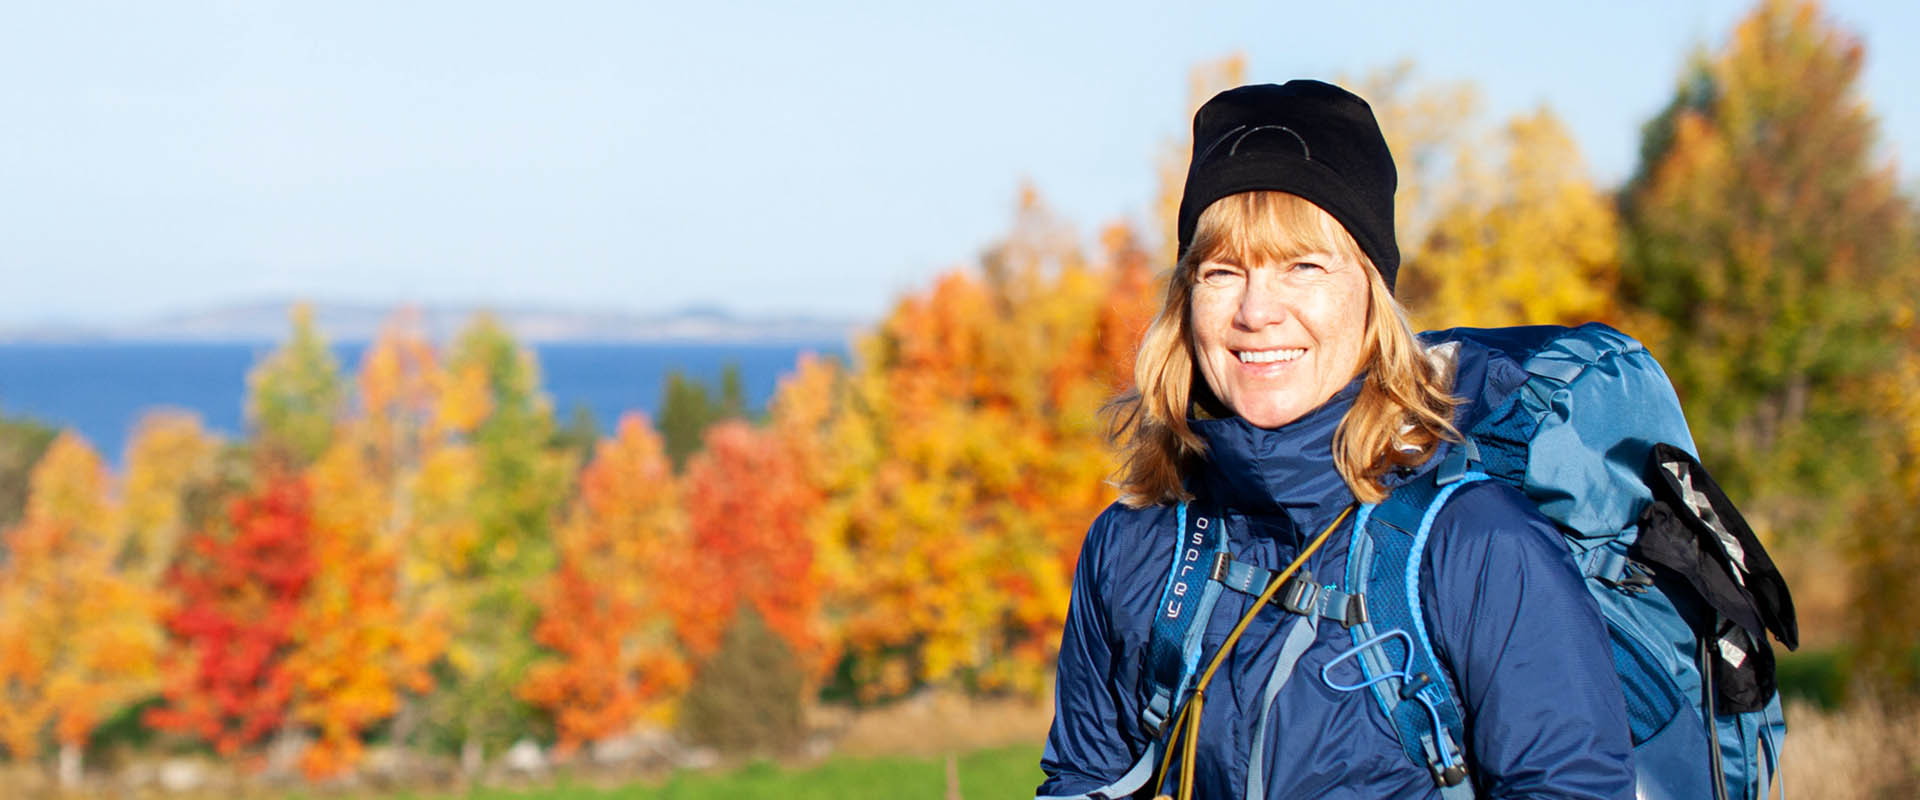 A woman on a hike in front of autumn leaf.